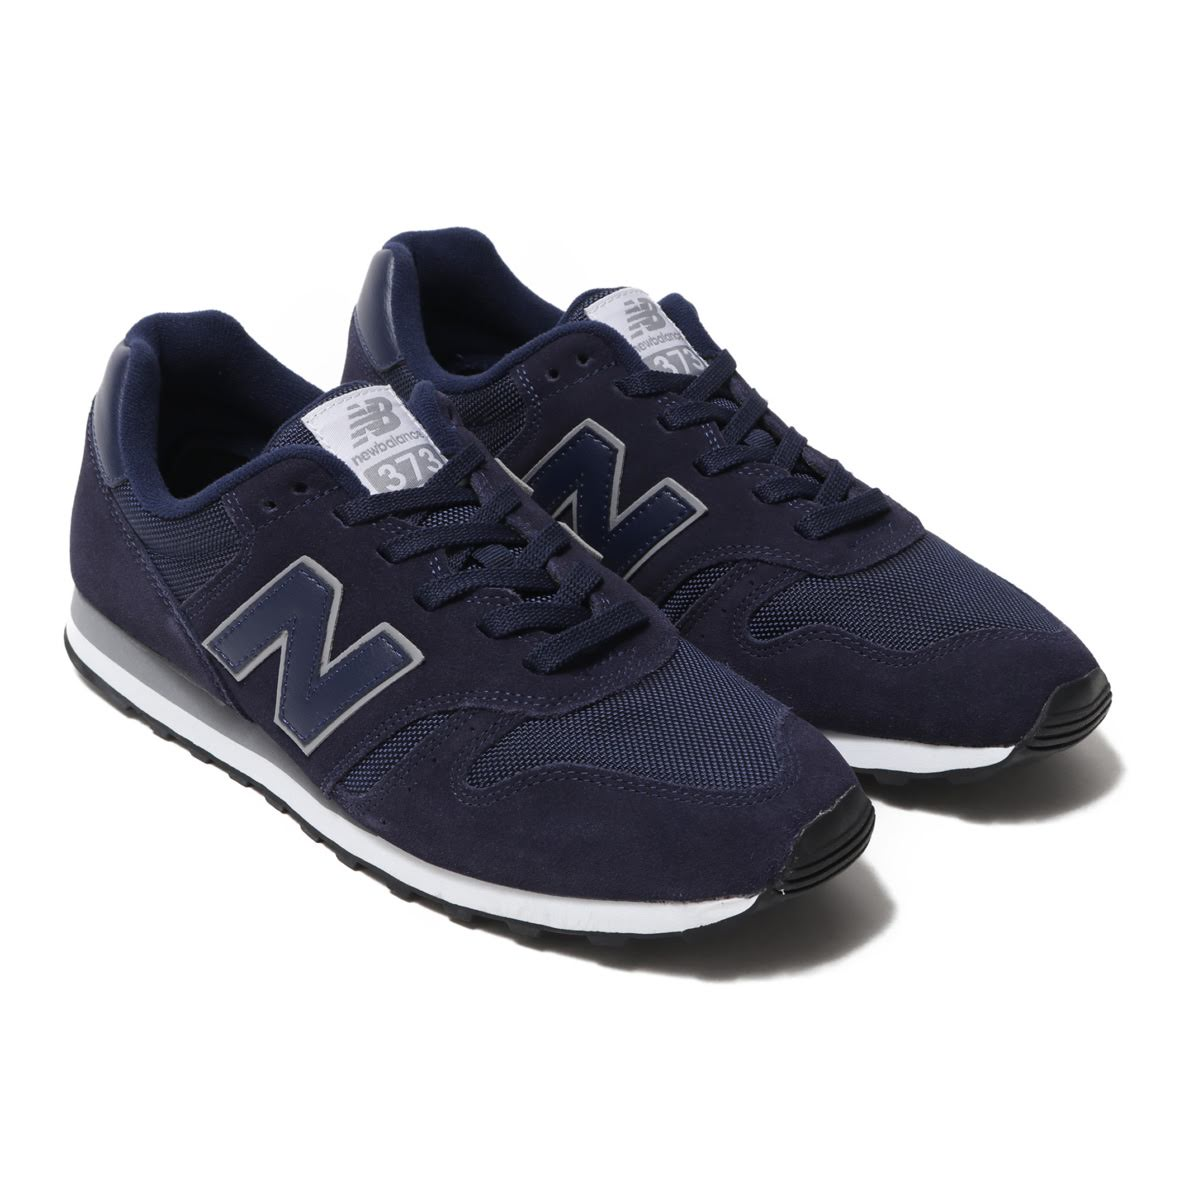 39e1212dedf71 A men's model to suggest in orthodox running-style of New Balance. I  release four colors of new collar which I gathered up in a monotone key in  dark color ...